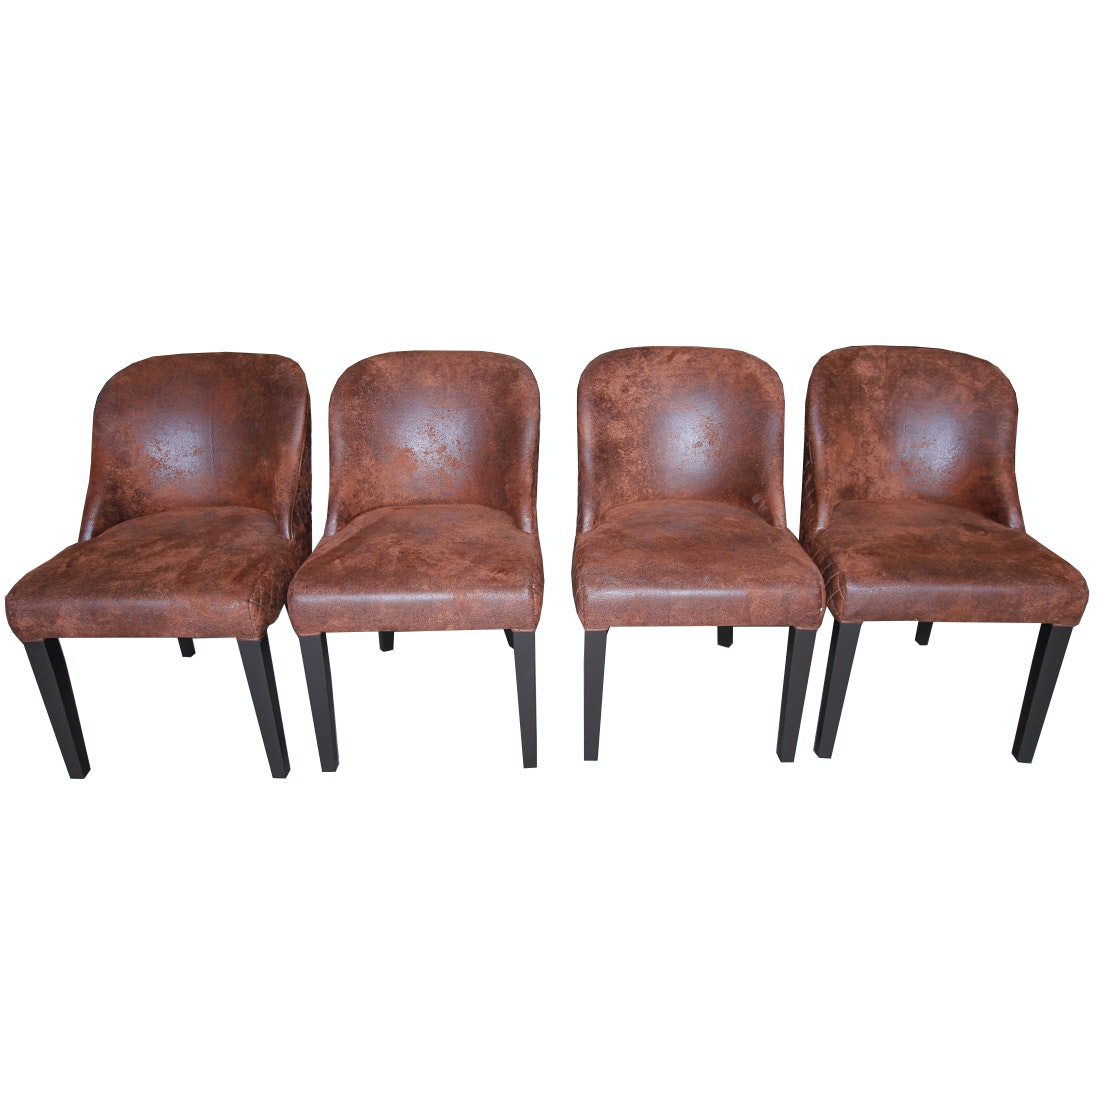 "Set of ""Renley"" Upholstered Accent Chairs by Blink Home"